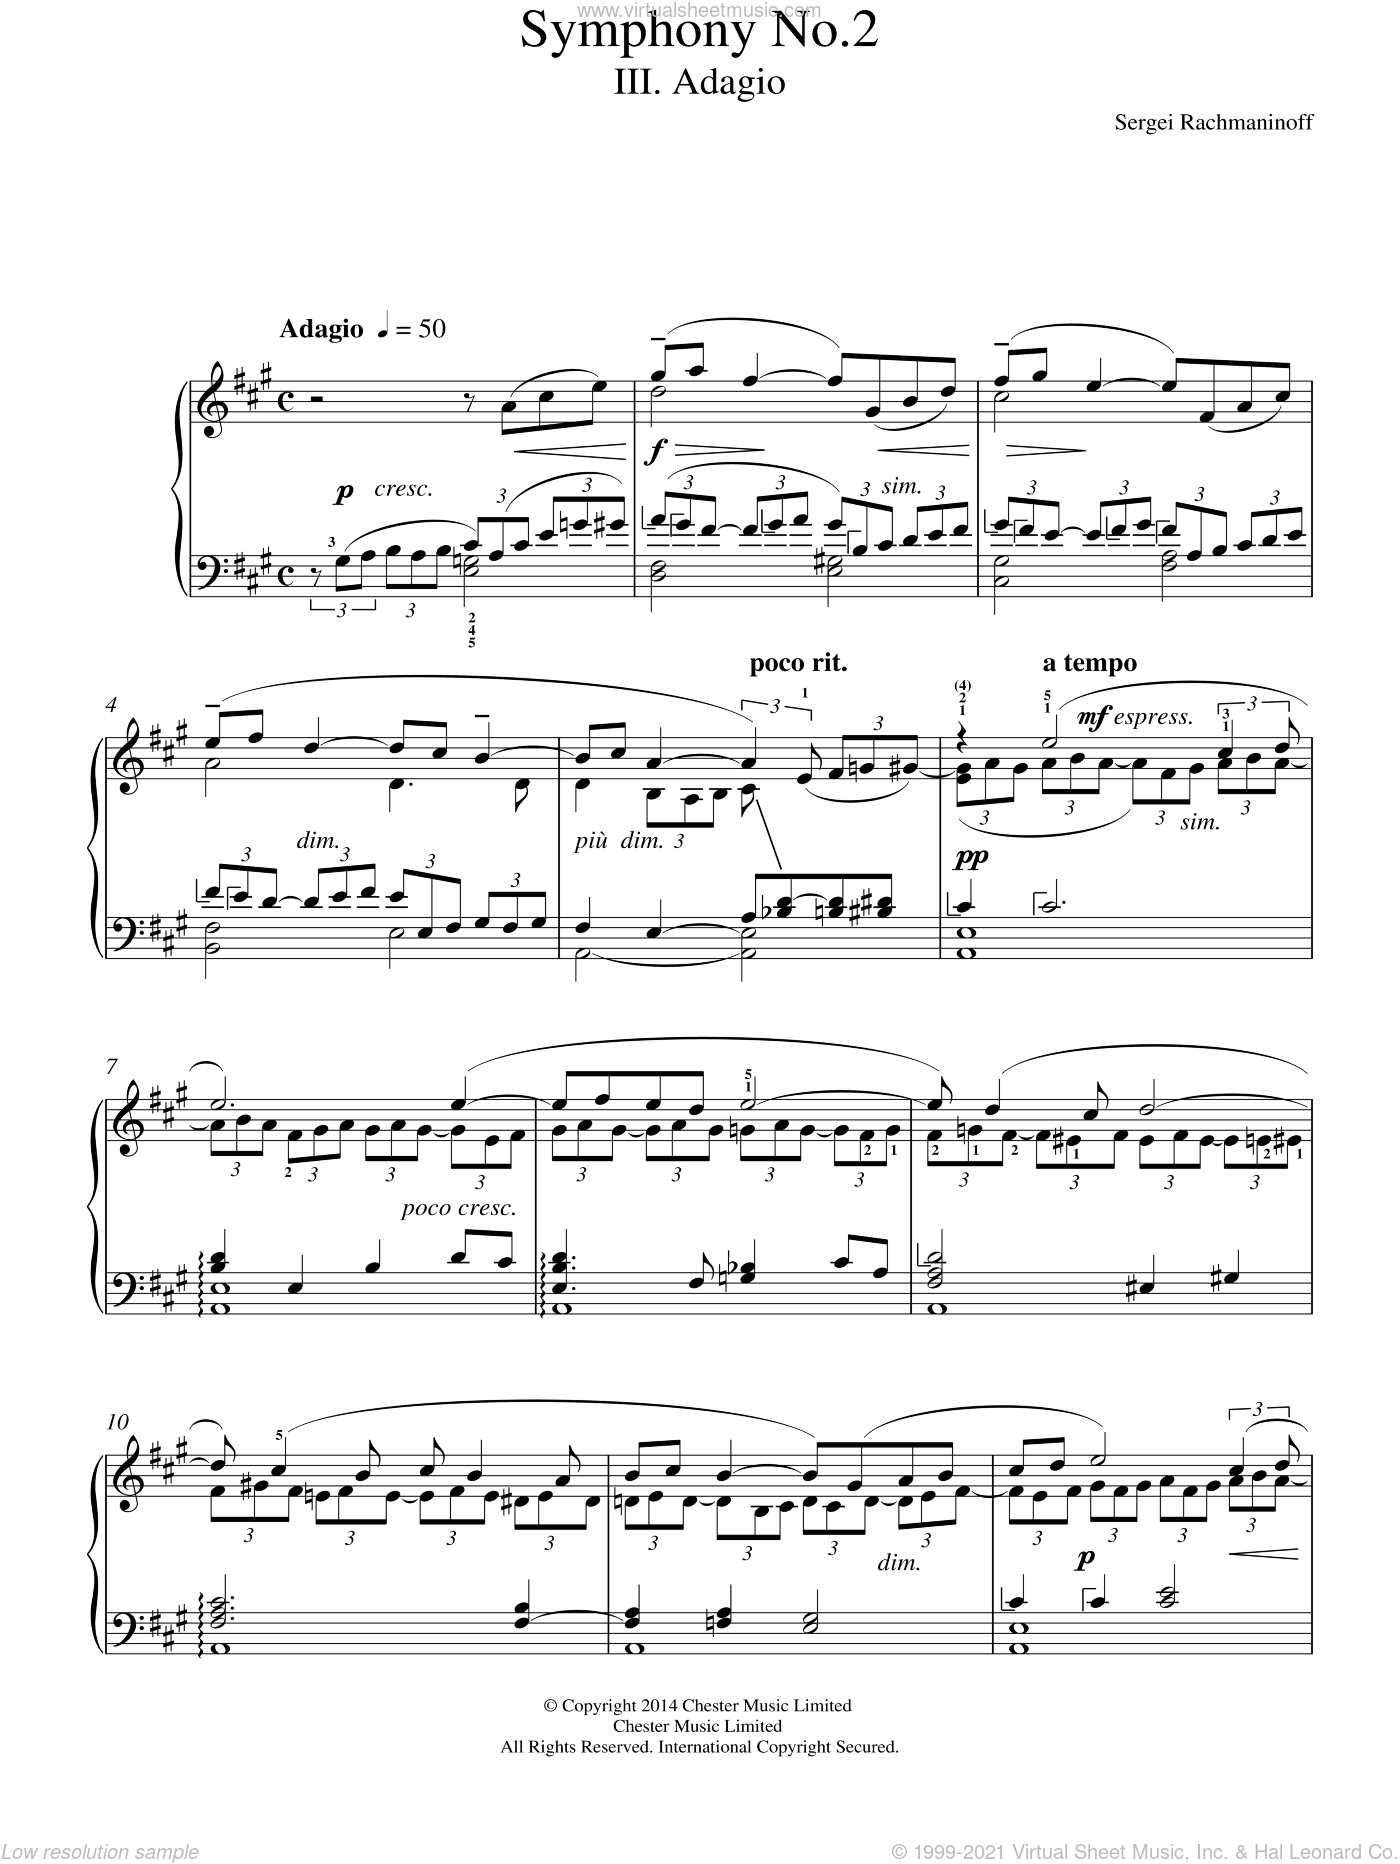 Symphony No.2 - 3rd Movement sheet music for piano solo by Serjeij Rachmaninoff, classical score, intermediate skill level